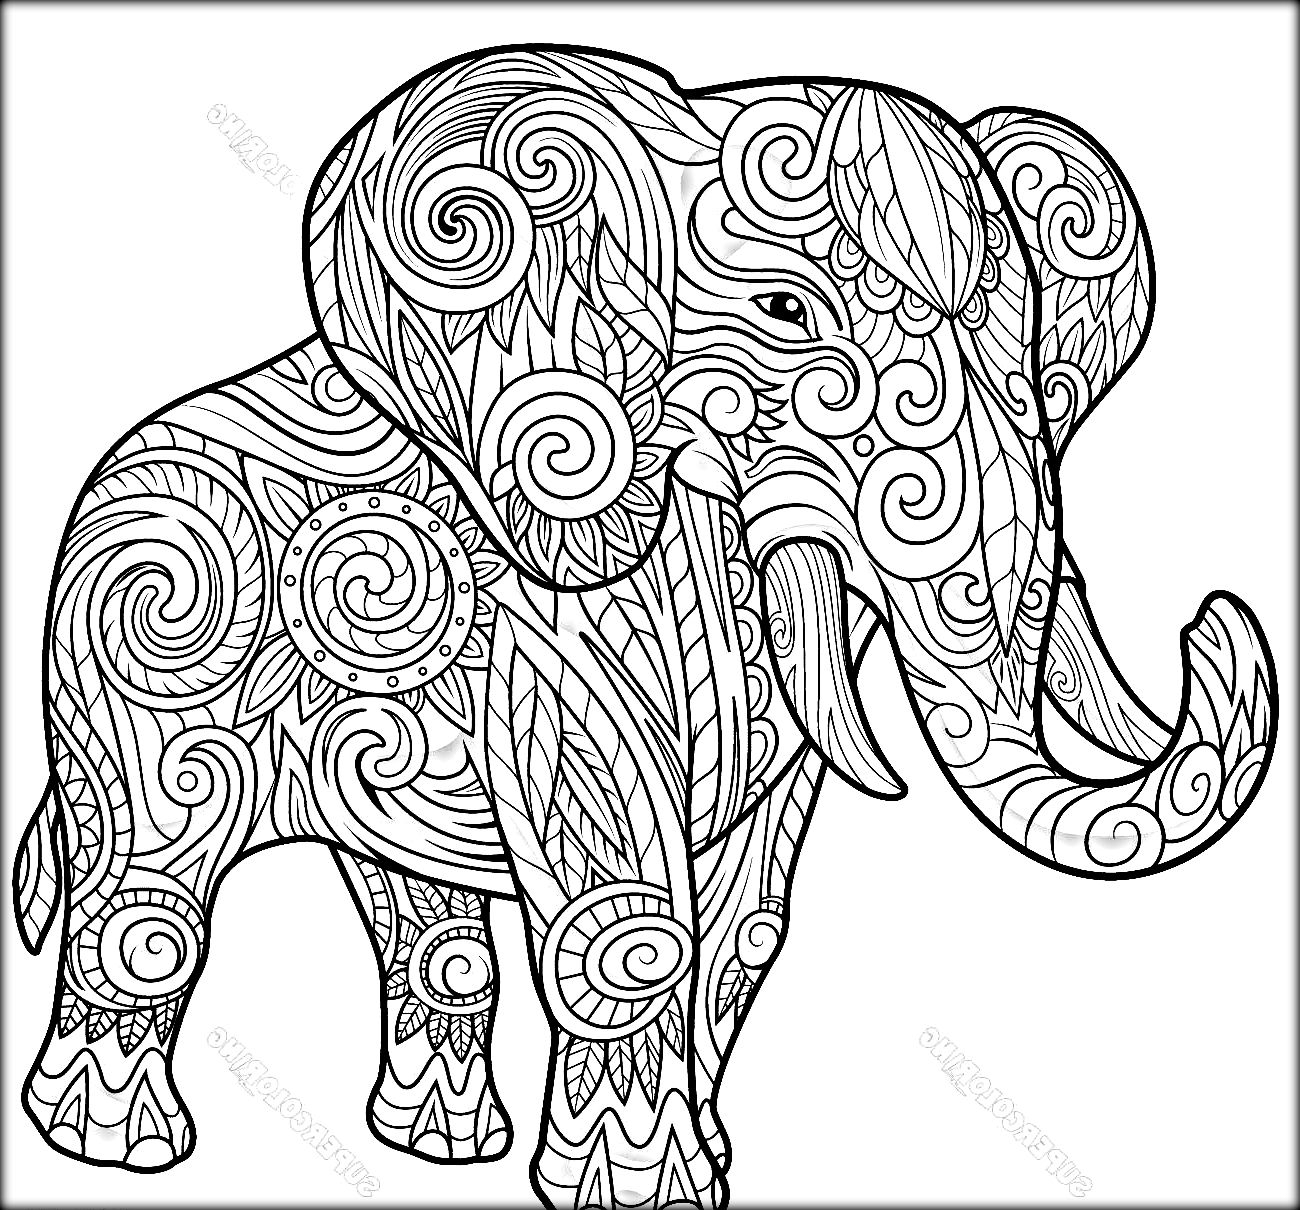 1300x1210 Awesome Abstract Elephant Coloring Pages For Adults Happy